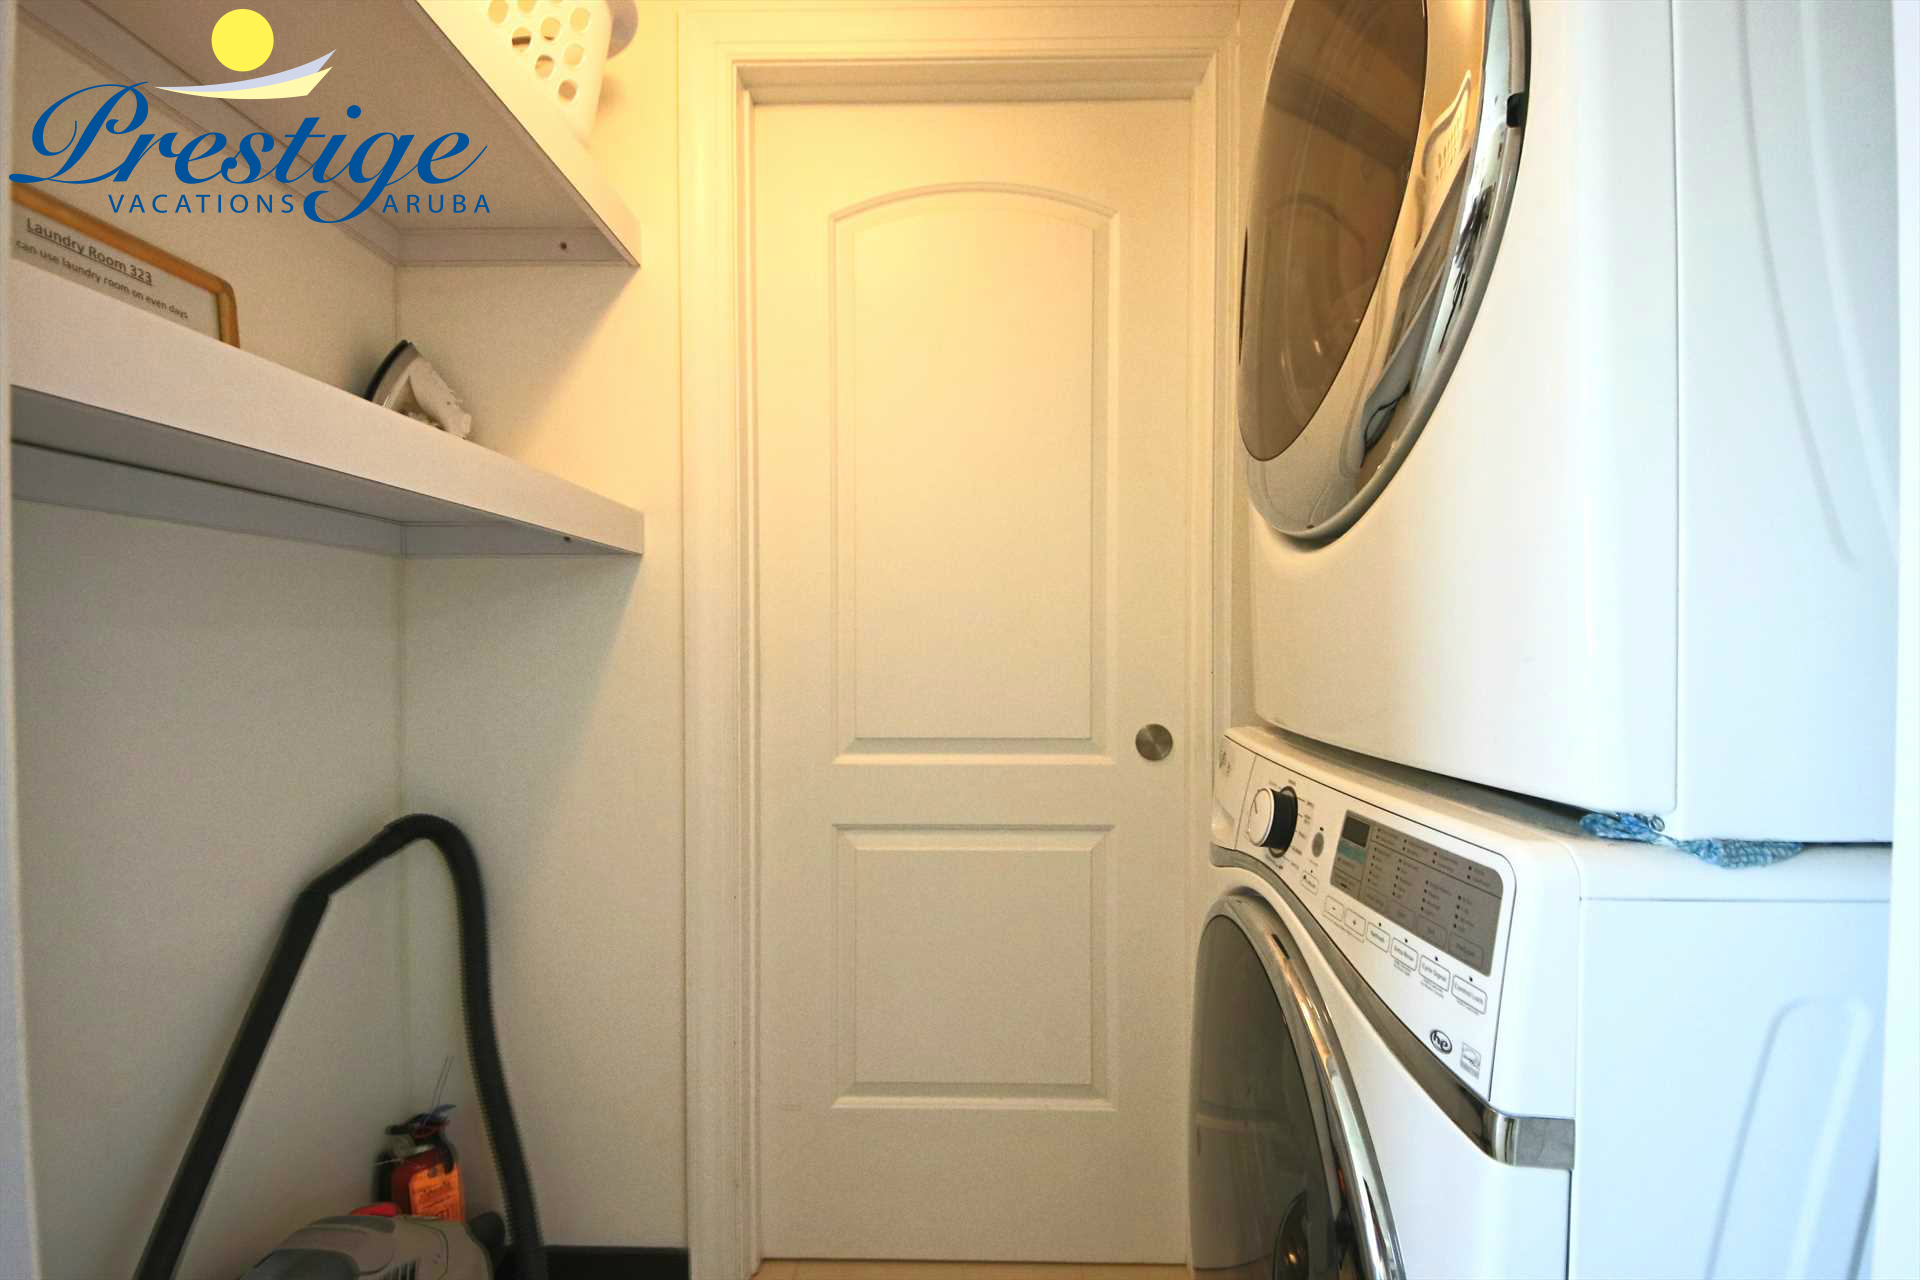 Washer/dryer facility shared on alternate days with the adjacent condo